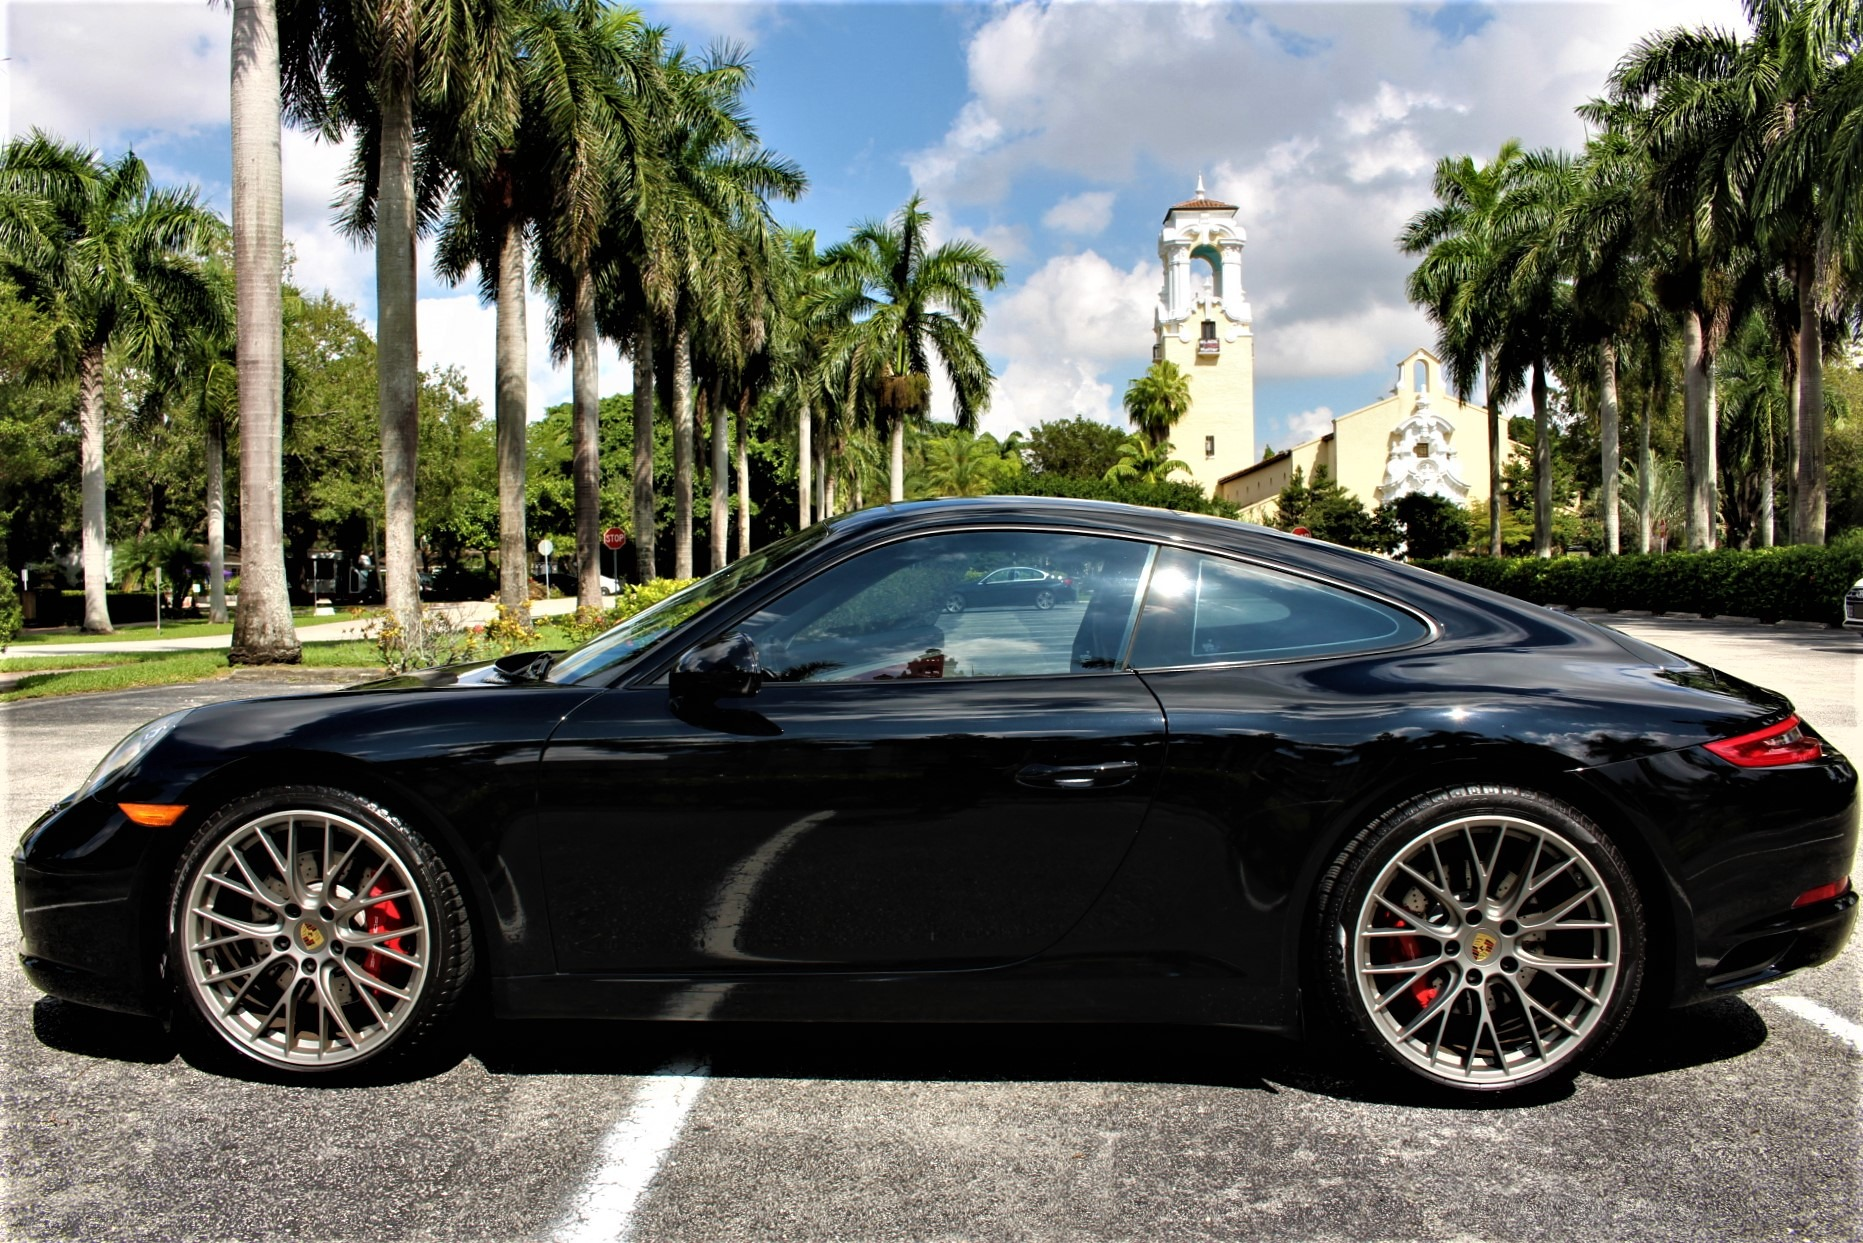 Used 2017 Porsche 911 Carrera S for sale Sold at The Gables Sports Cars in Miami FL 33146 4